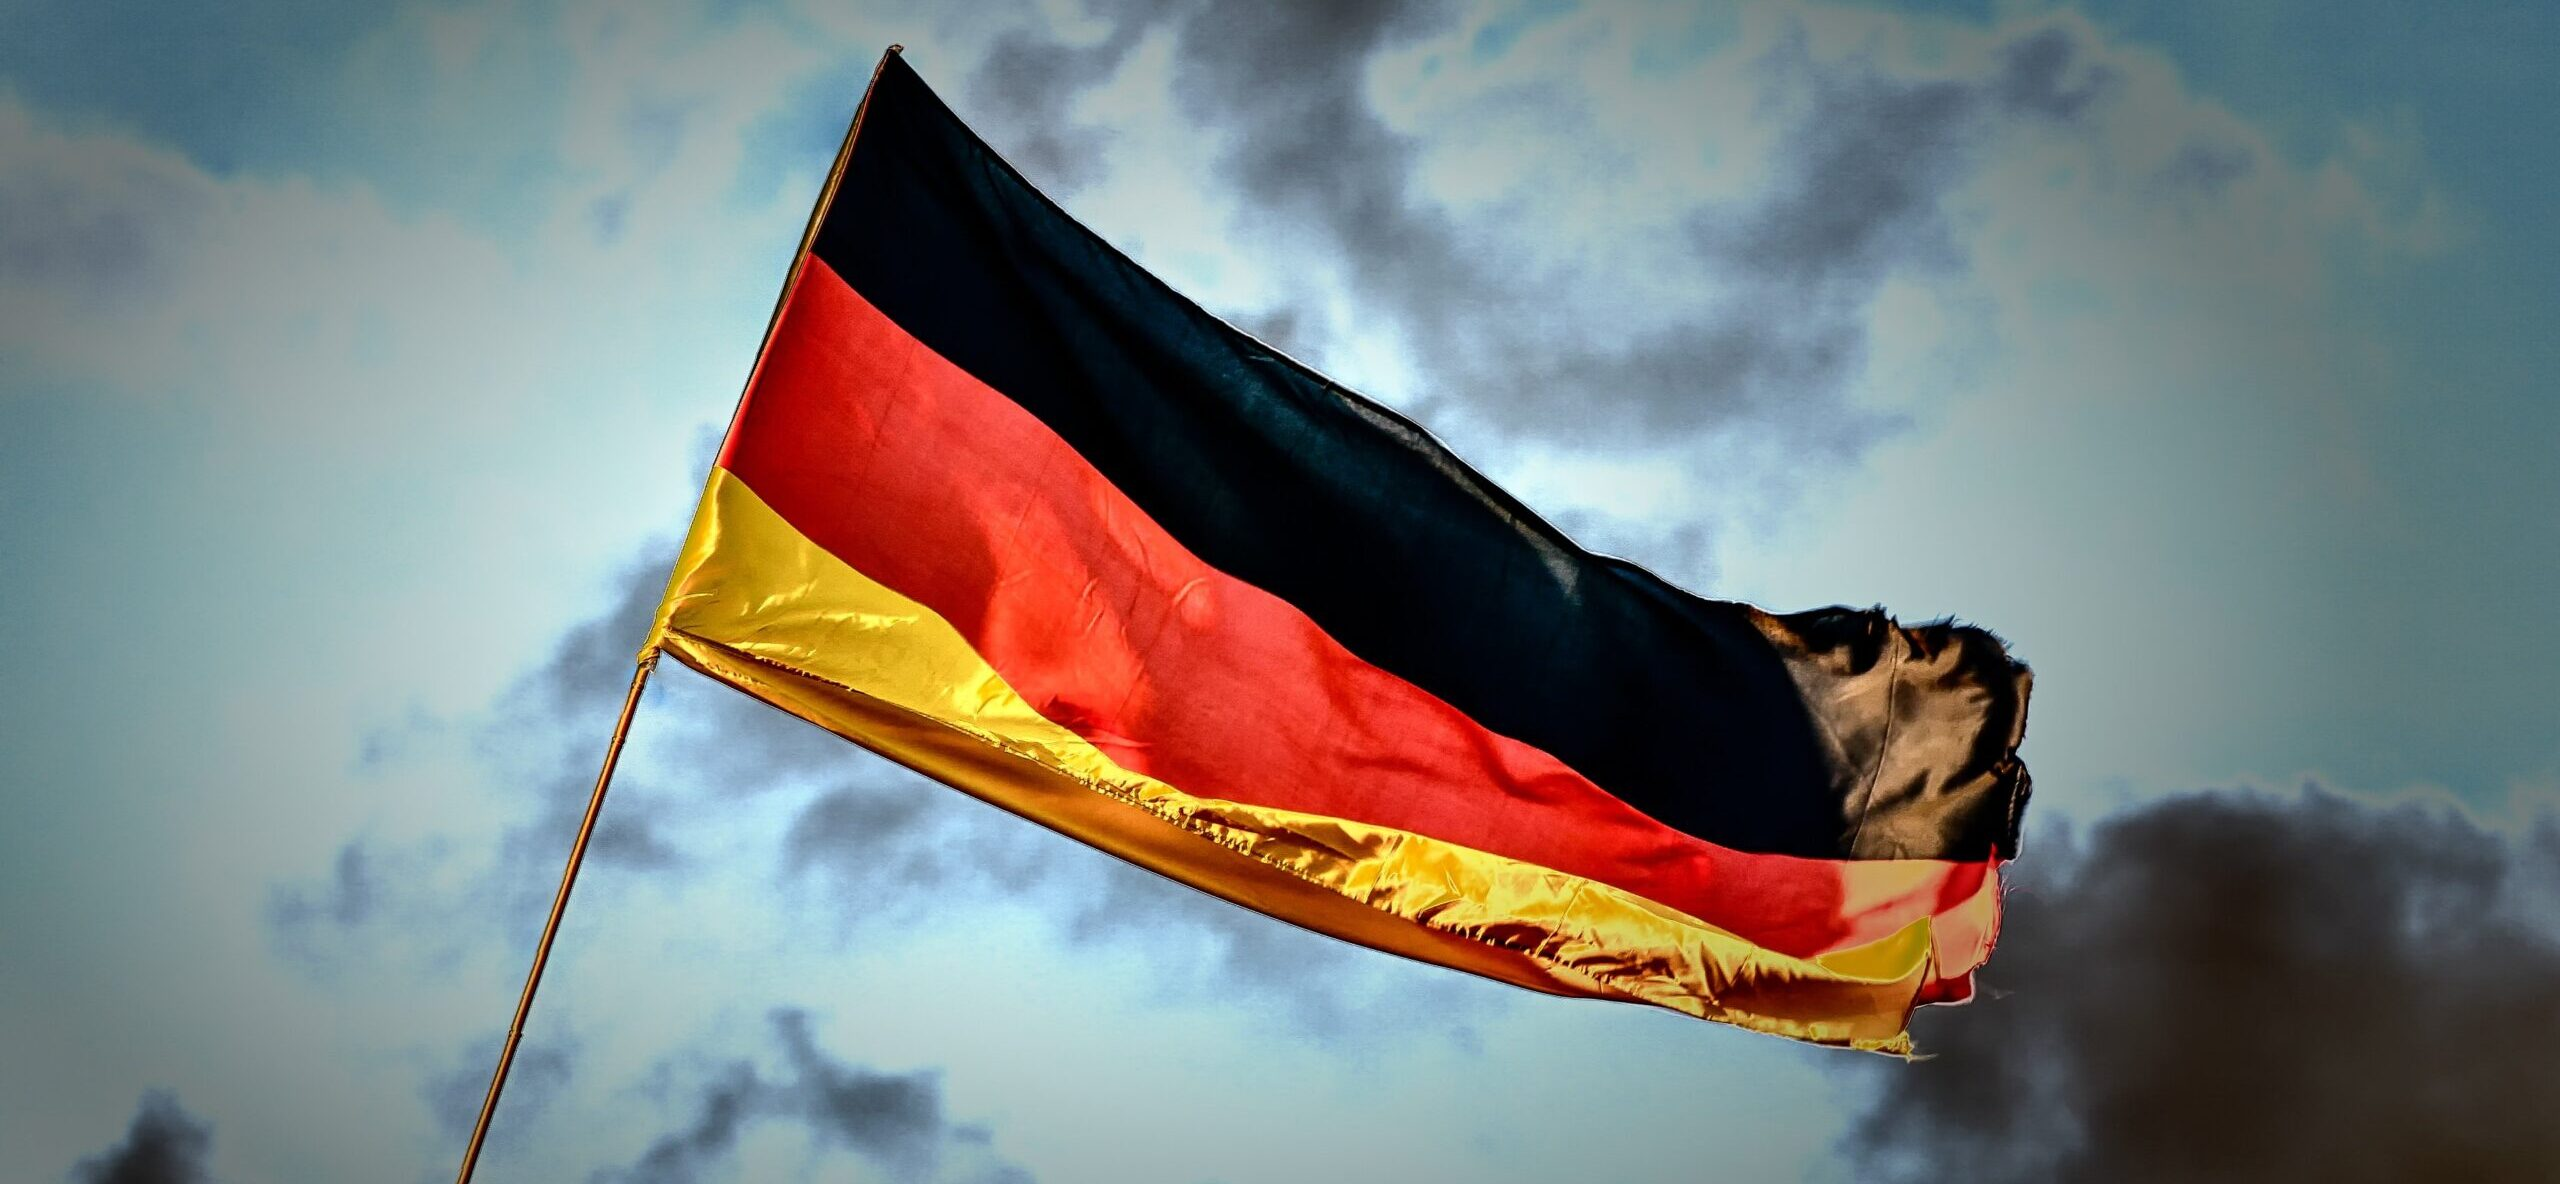 The Reverse Side of German Democracy